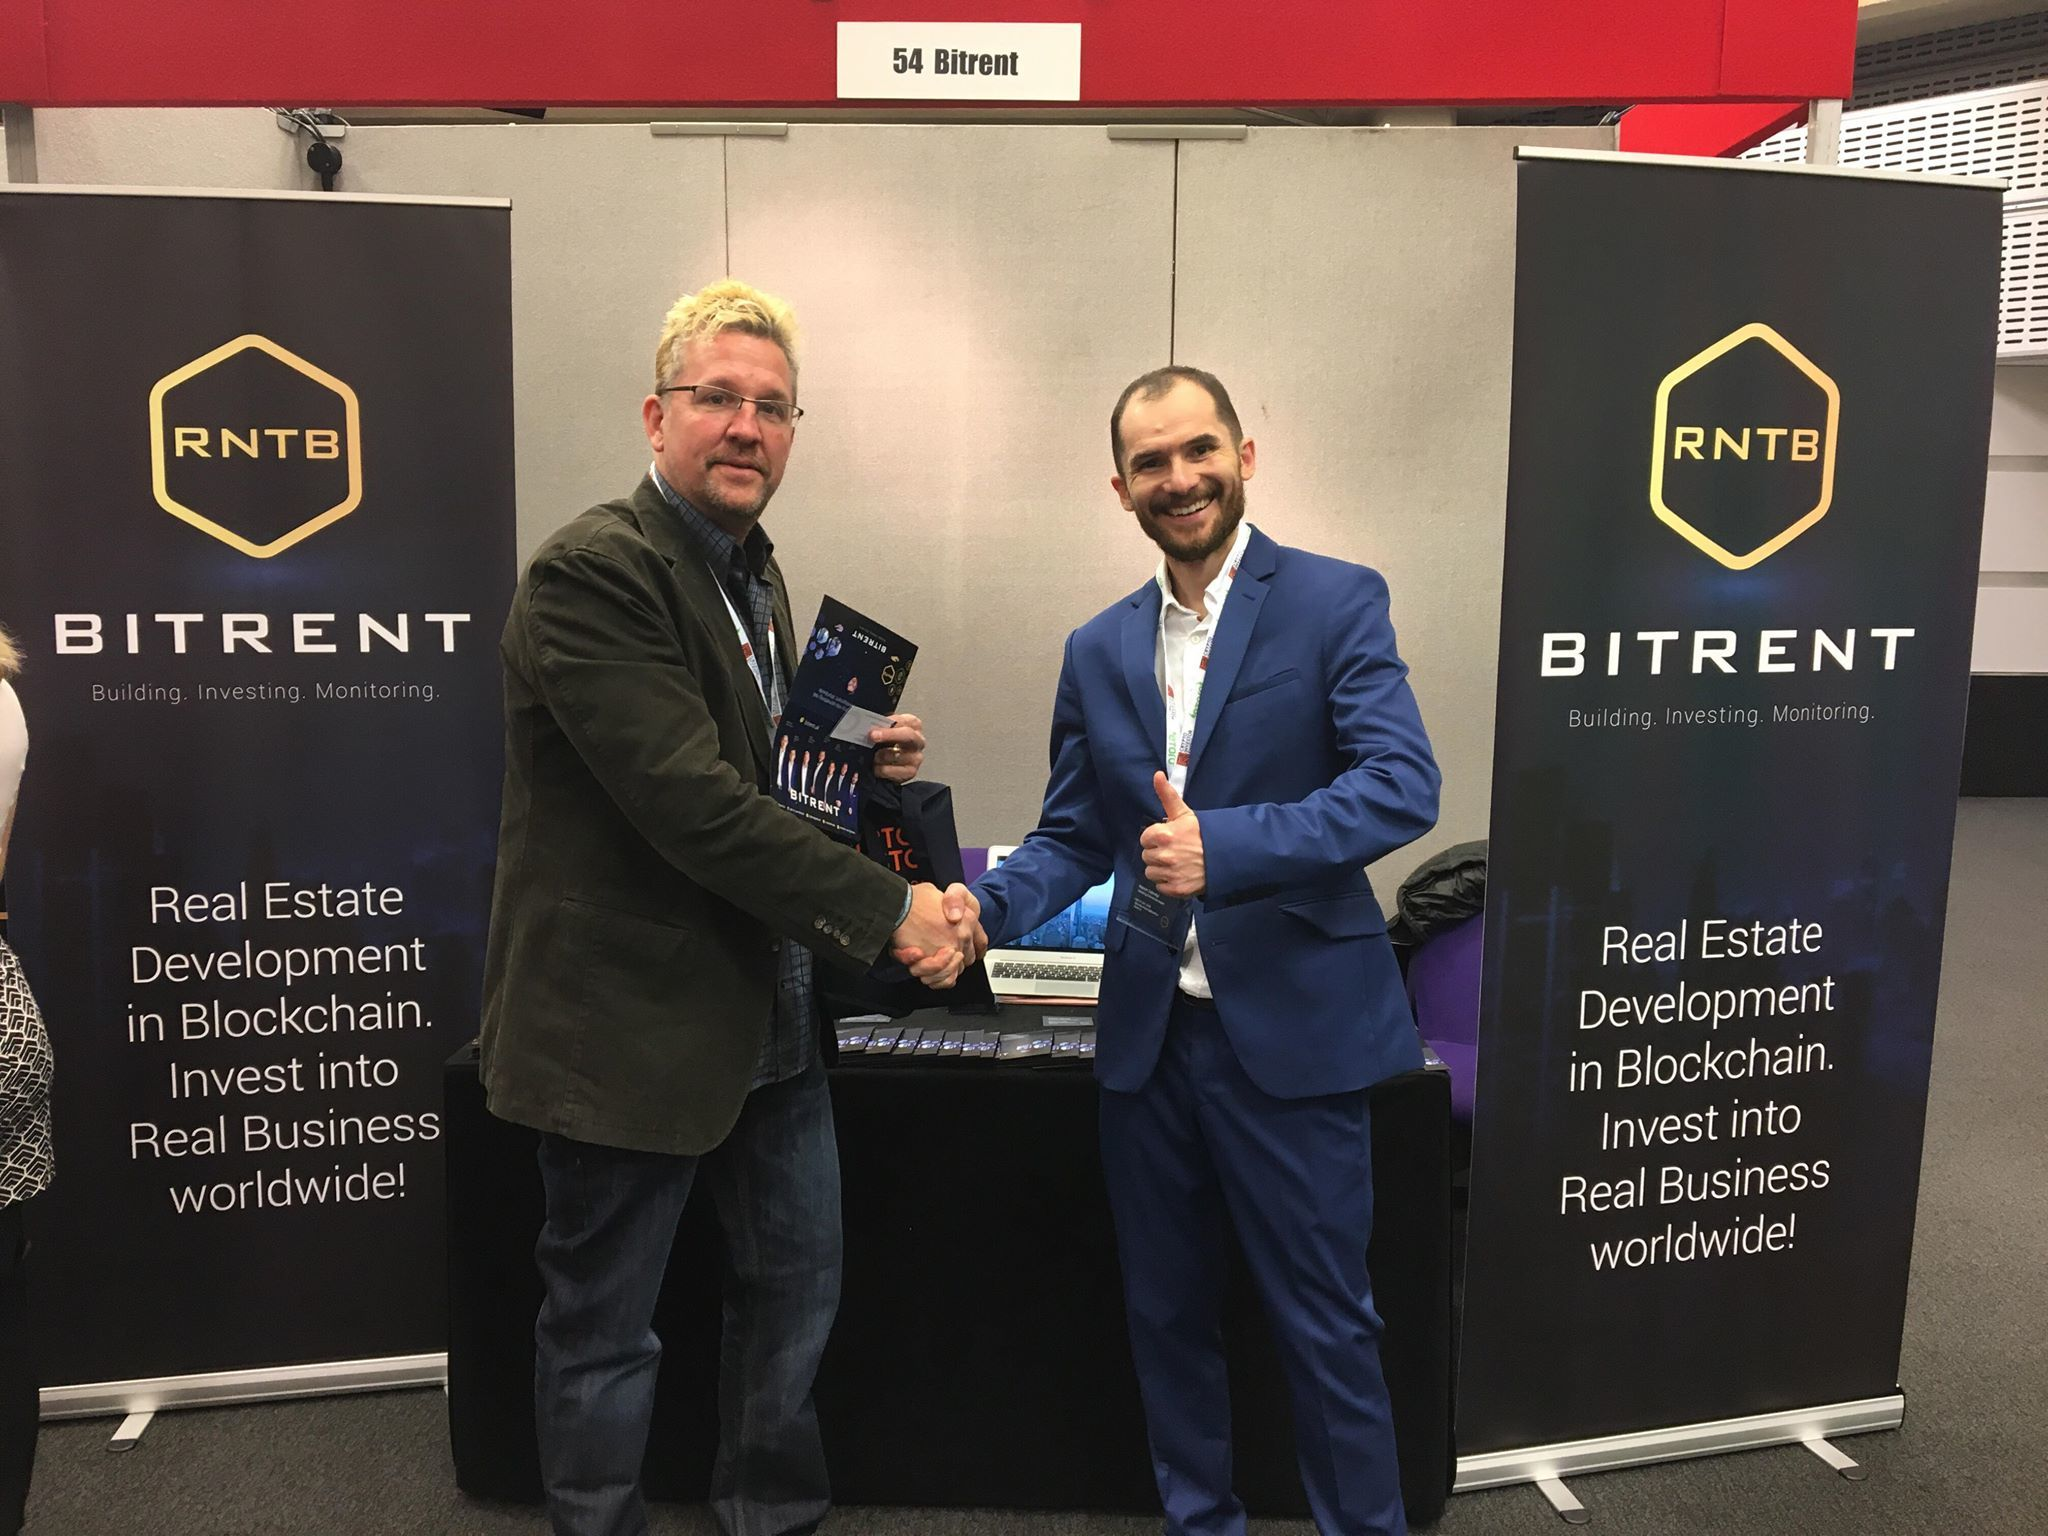 london cryptocurrency show